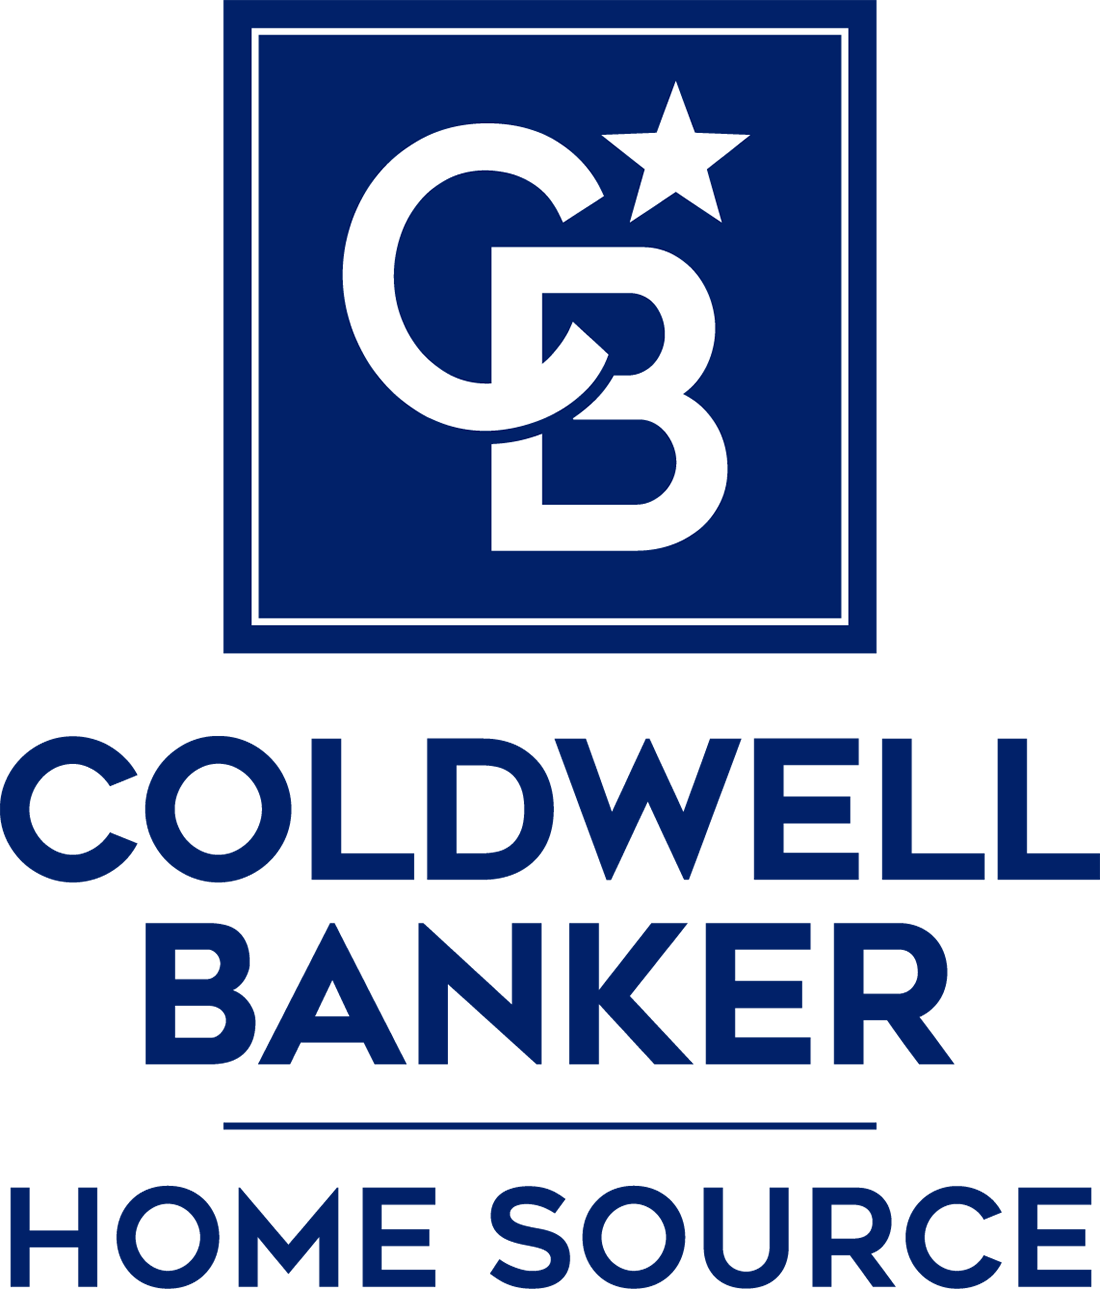 Ann Marie Hammond & Associates - Coldwell Banker Home Source Logo